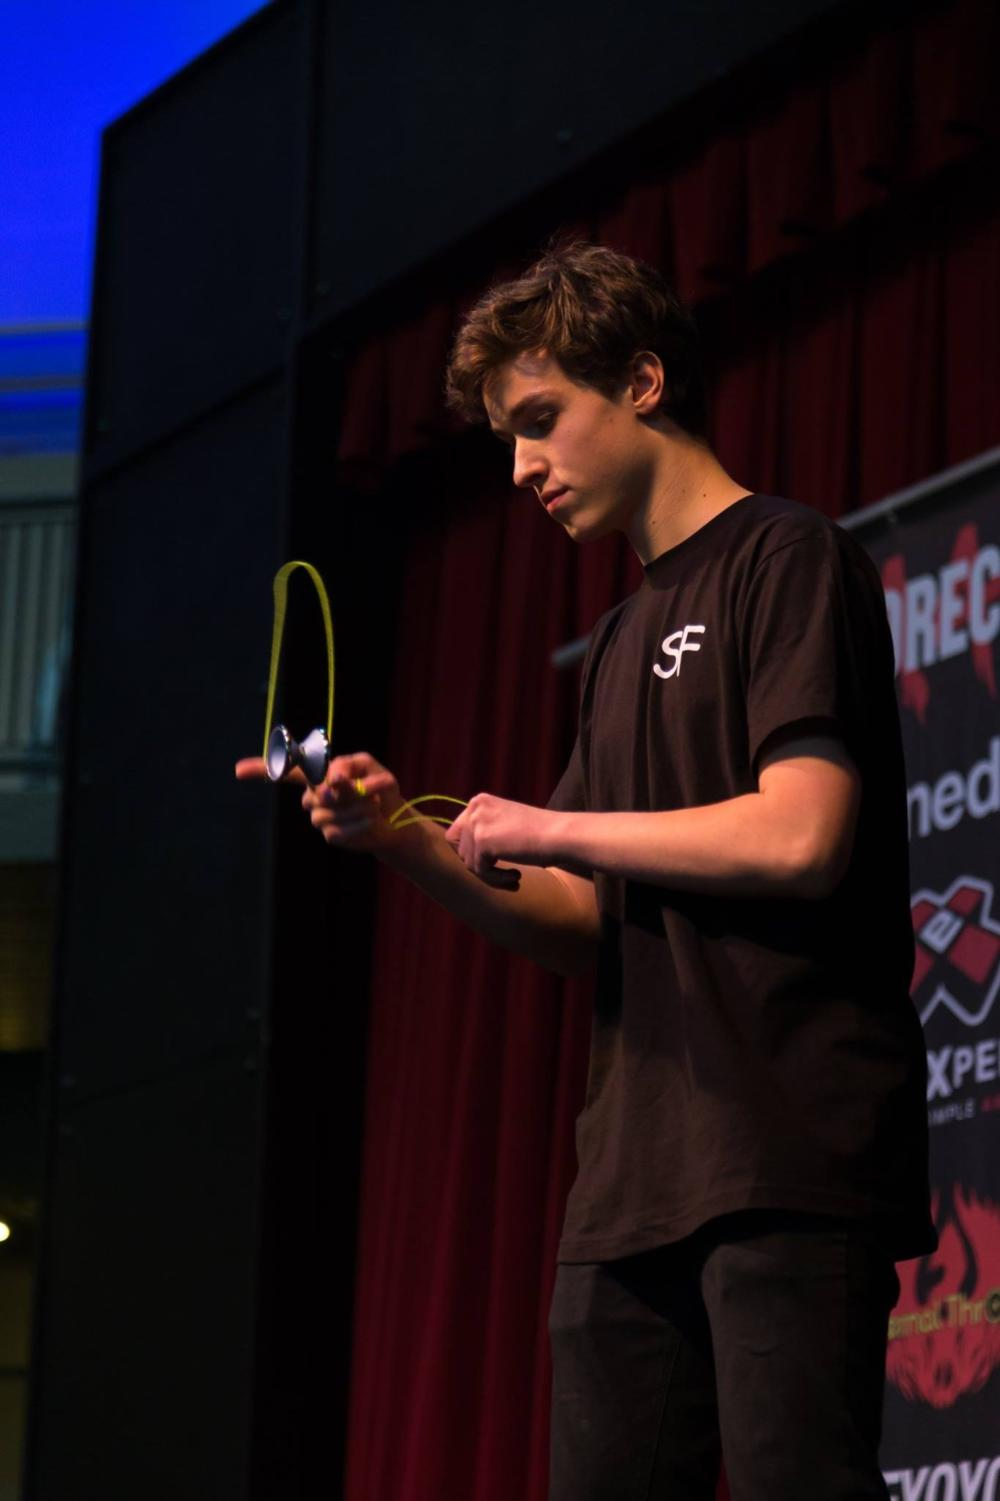 Collin Ellingson performing tricks at a yo-yo competition, participating under his team of SF.